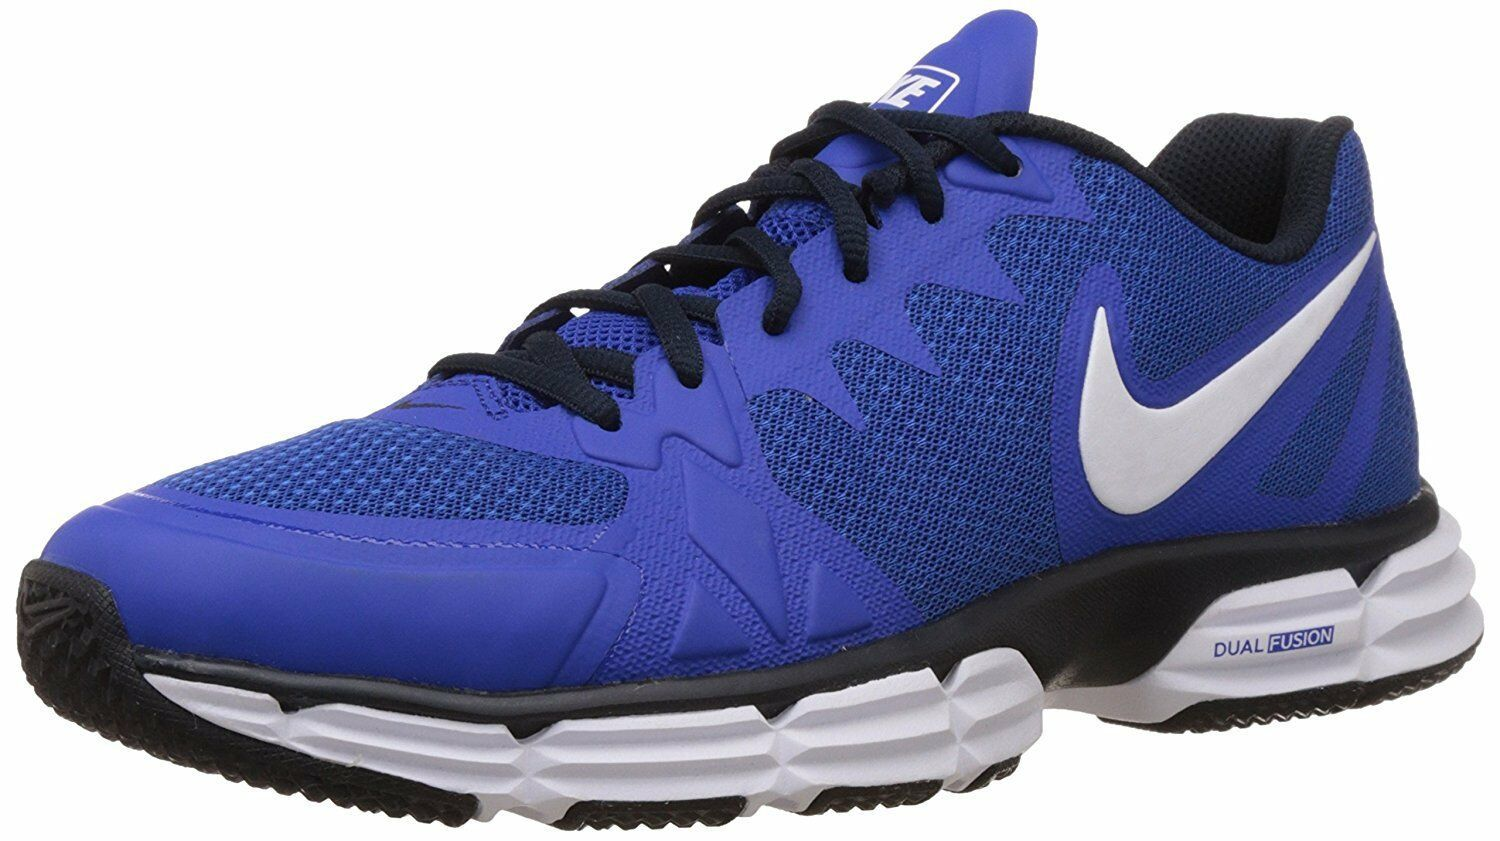 Men's Nike Dual Fusion TR 6 Training Shoes, 704889 404 Size 9 Game Royal/W